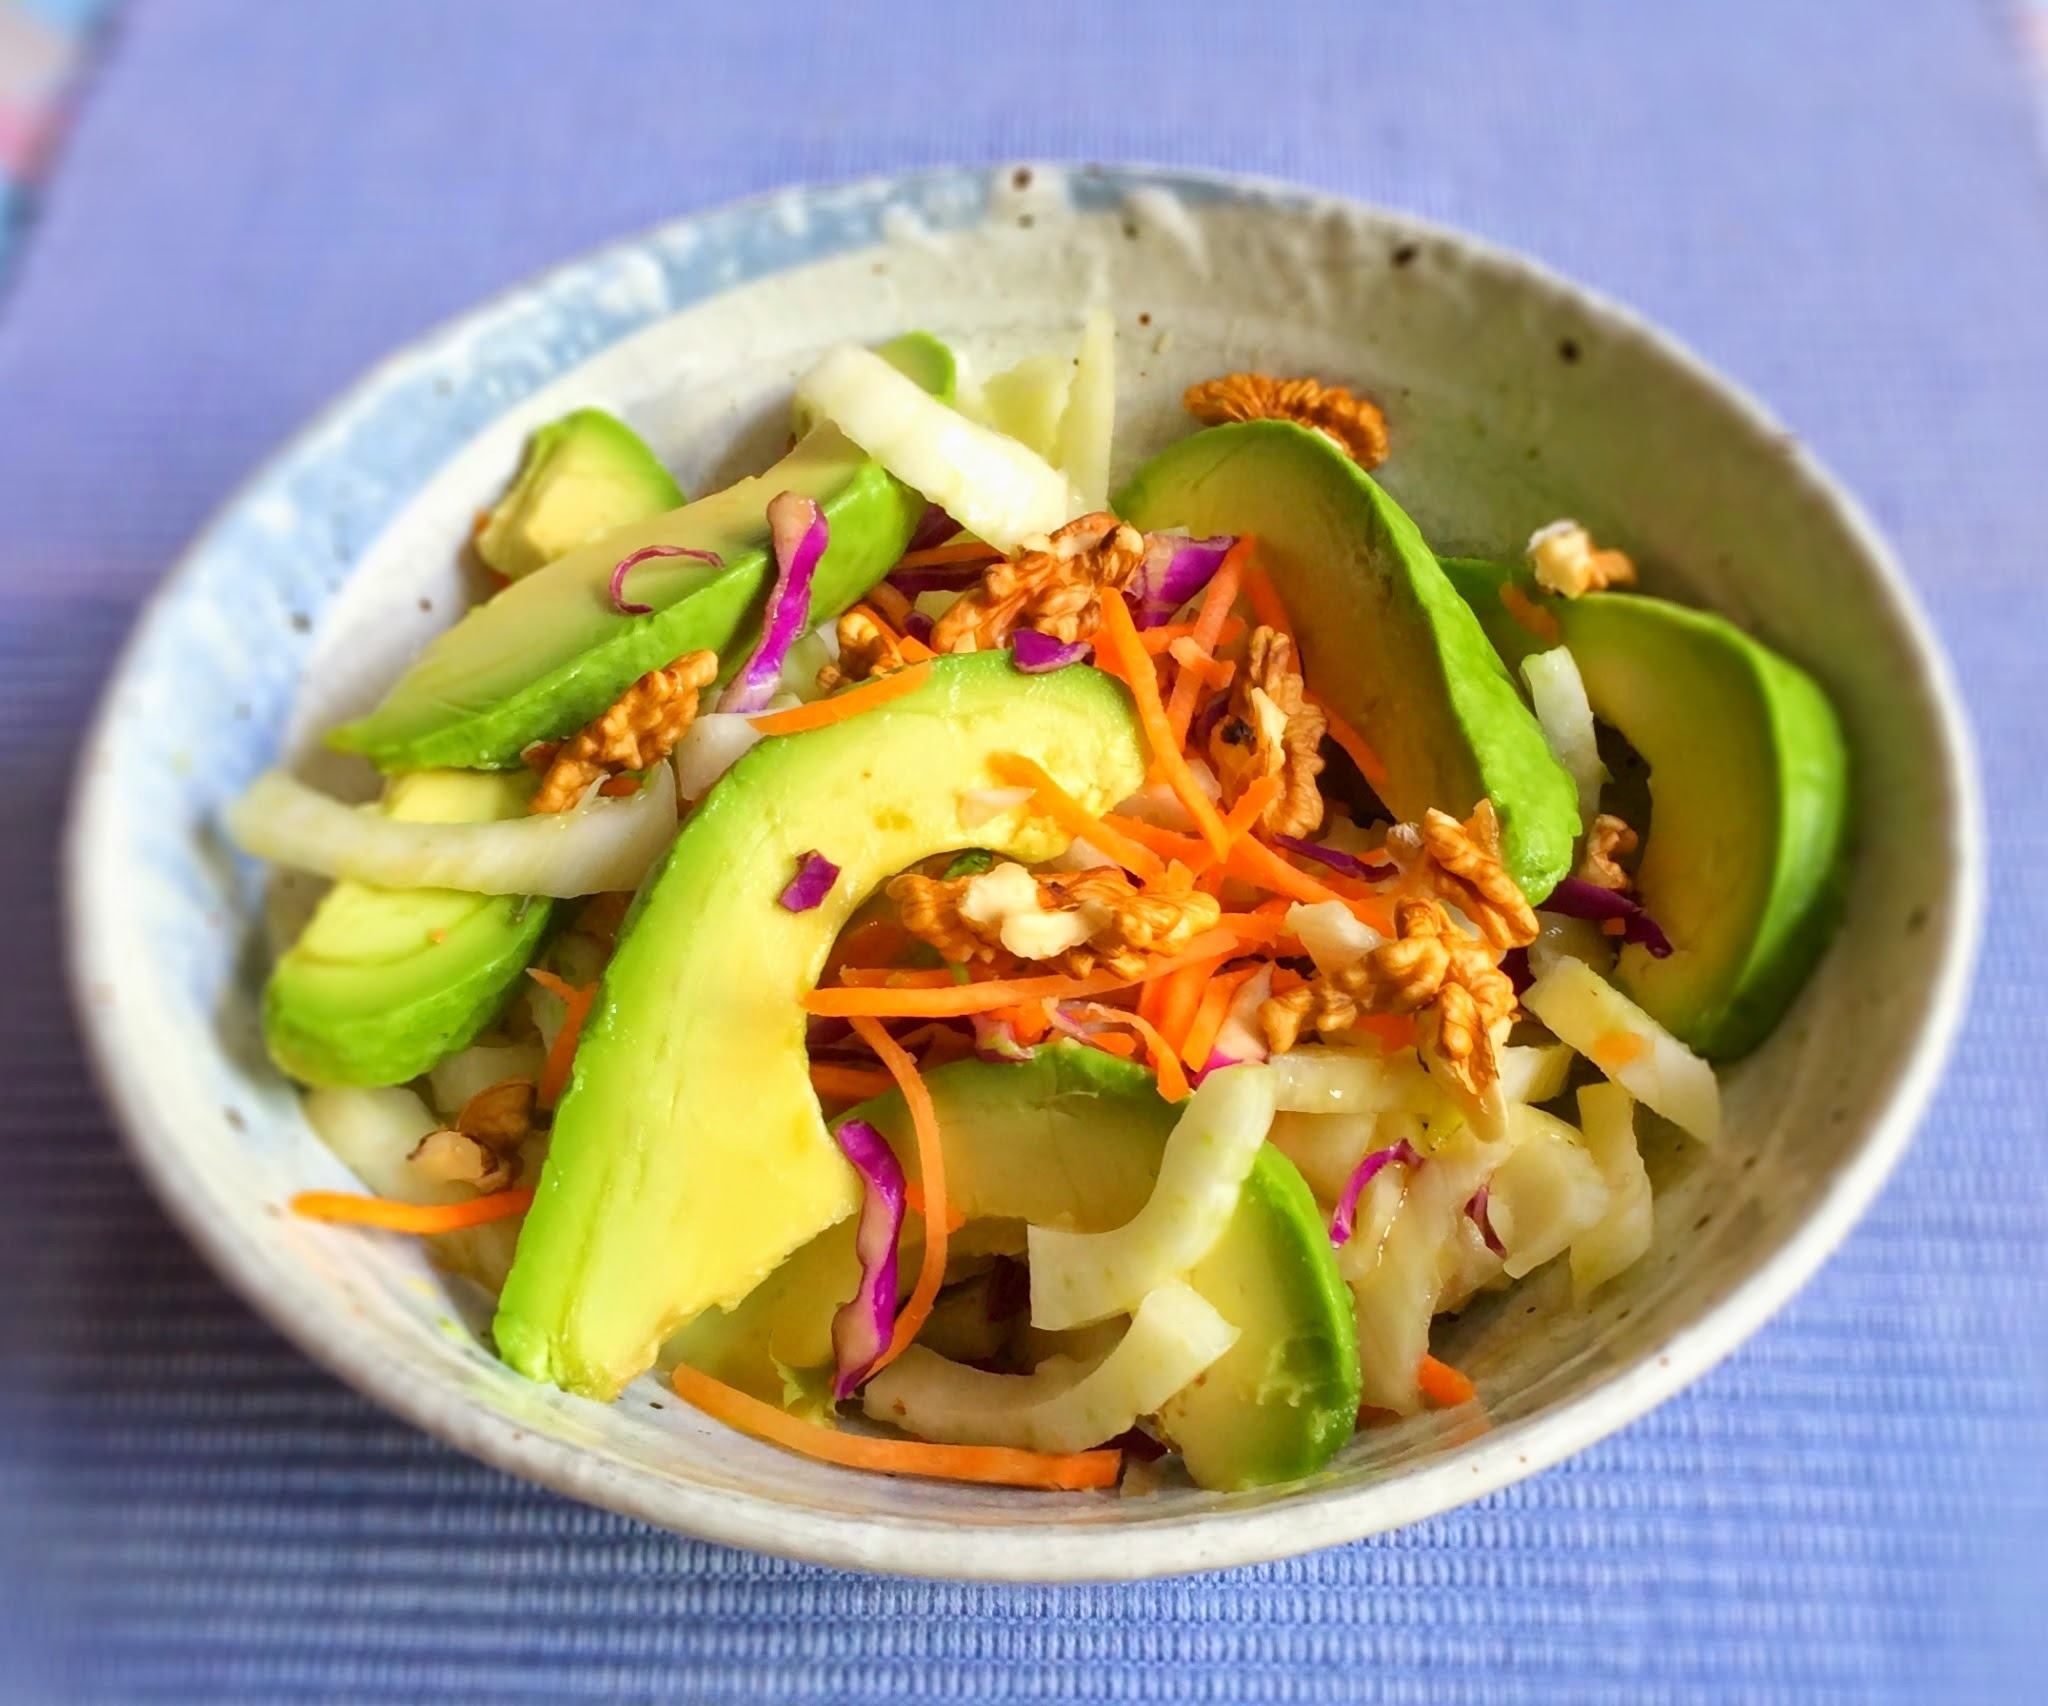 Florence Fennel and avocado salad with walnuts